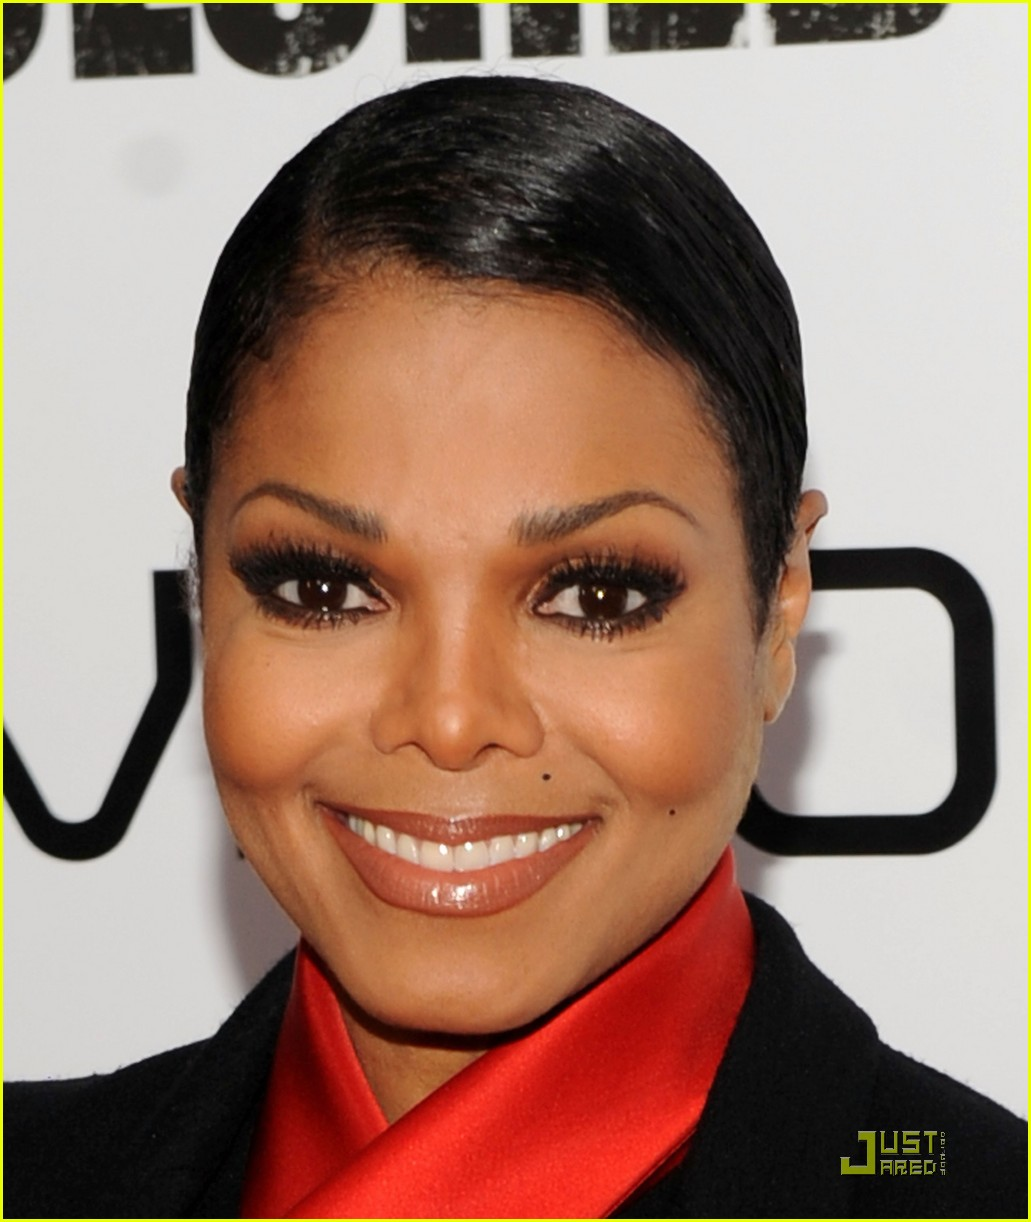 http://4.bp.blogspot.com/-wbR26gayCRg/UNyBaIYl7mI/AAAAAAAABb8/rmBgMNaDQEk/s1600/janet-jackson-for-colored-girls-01.jpg